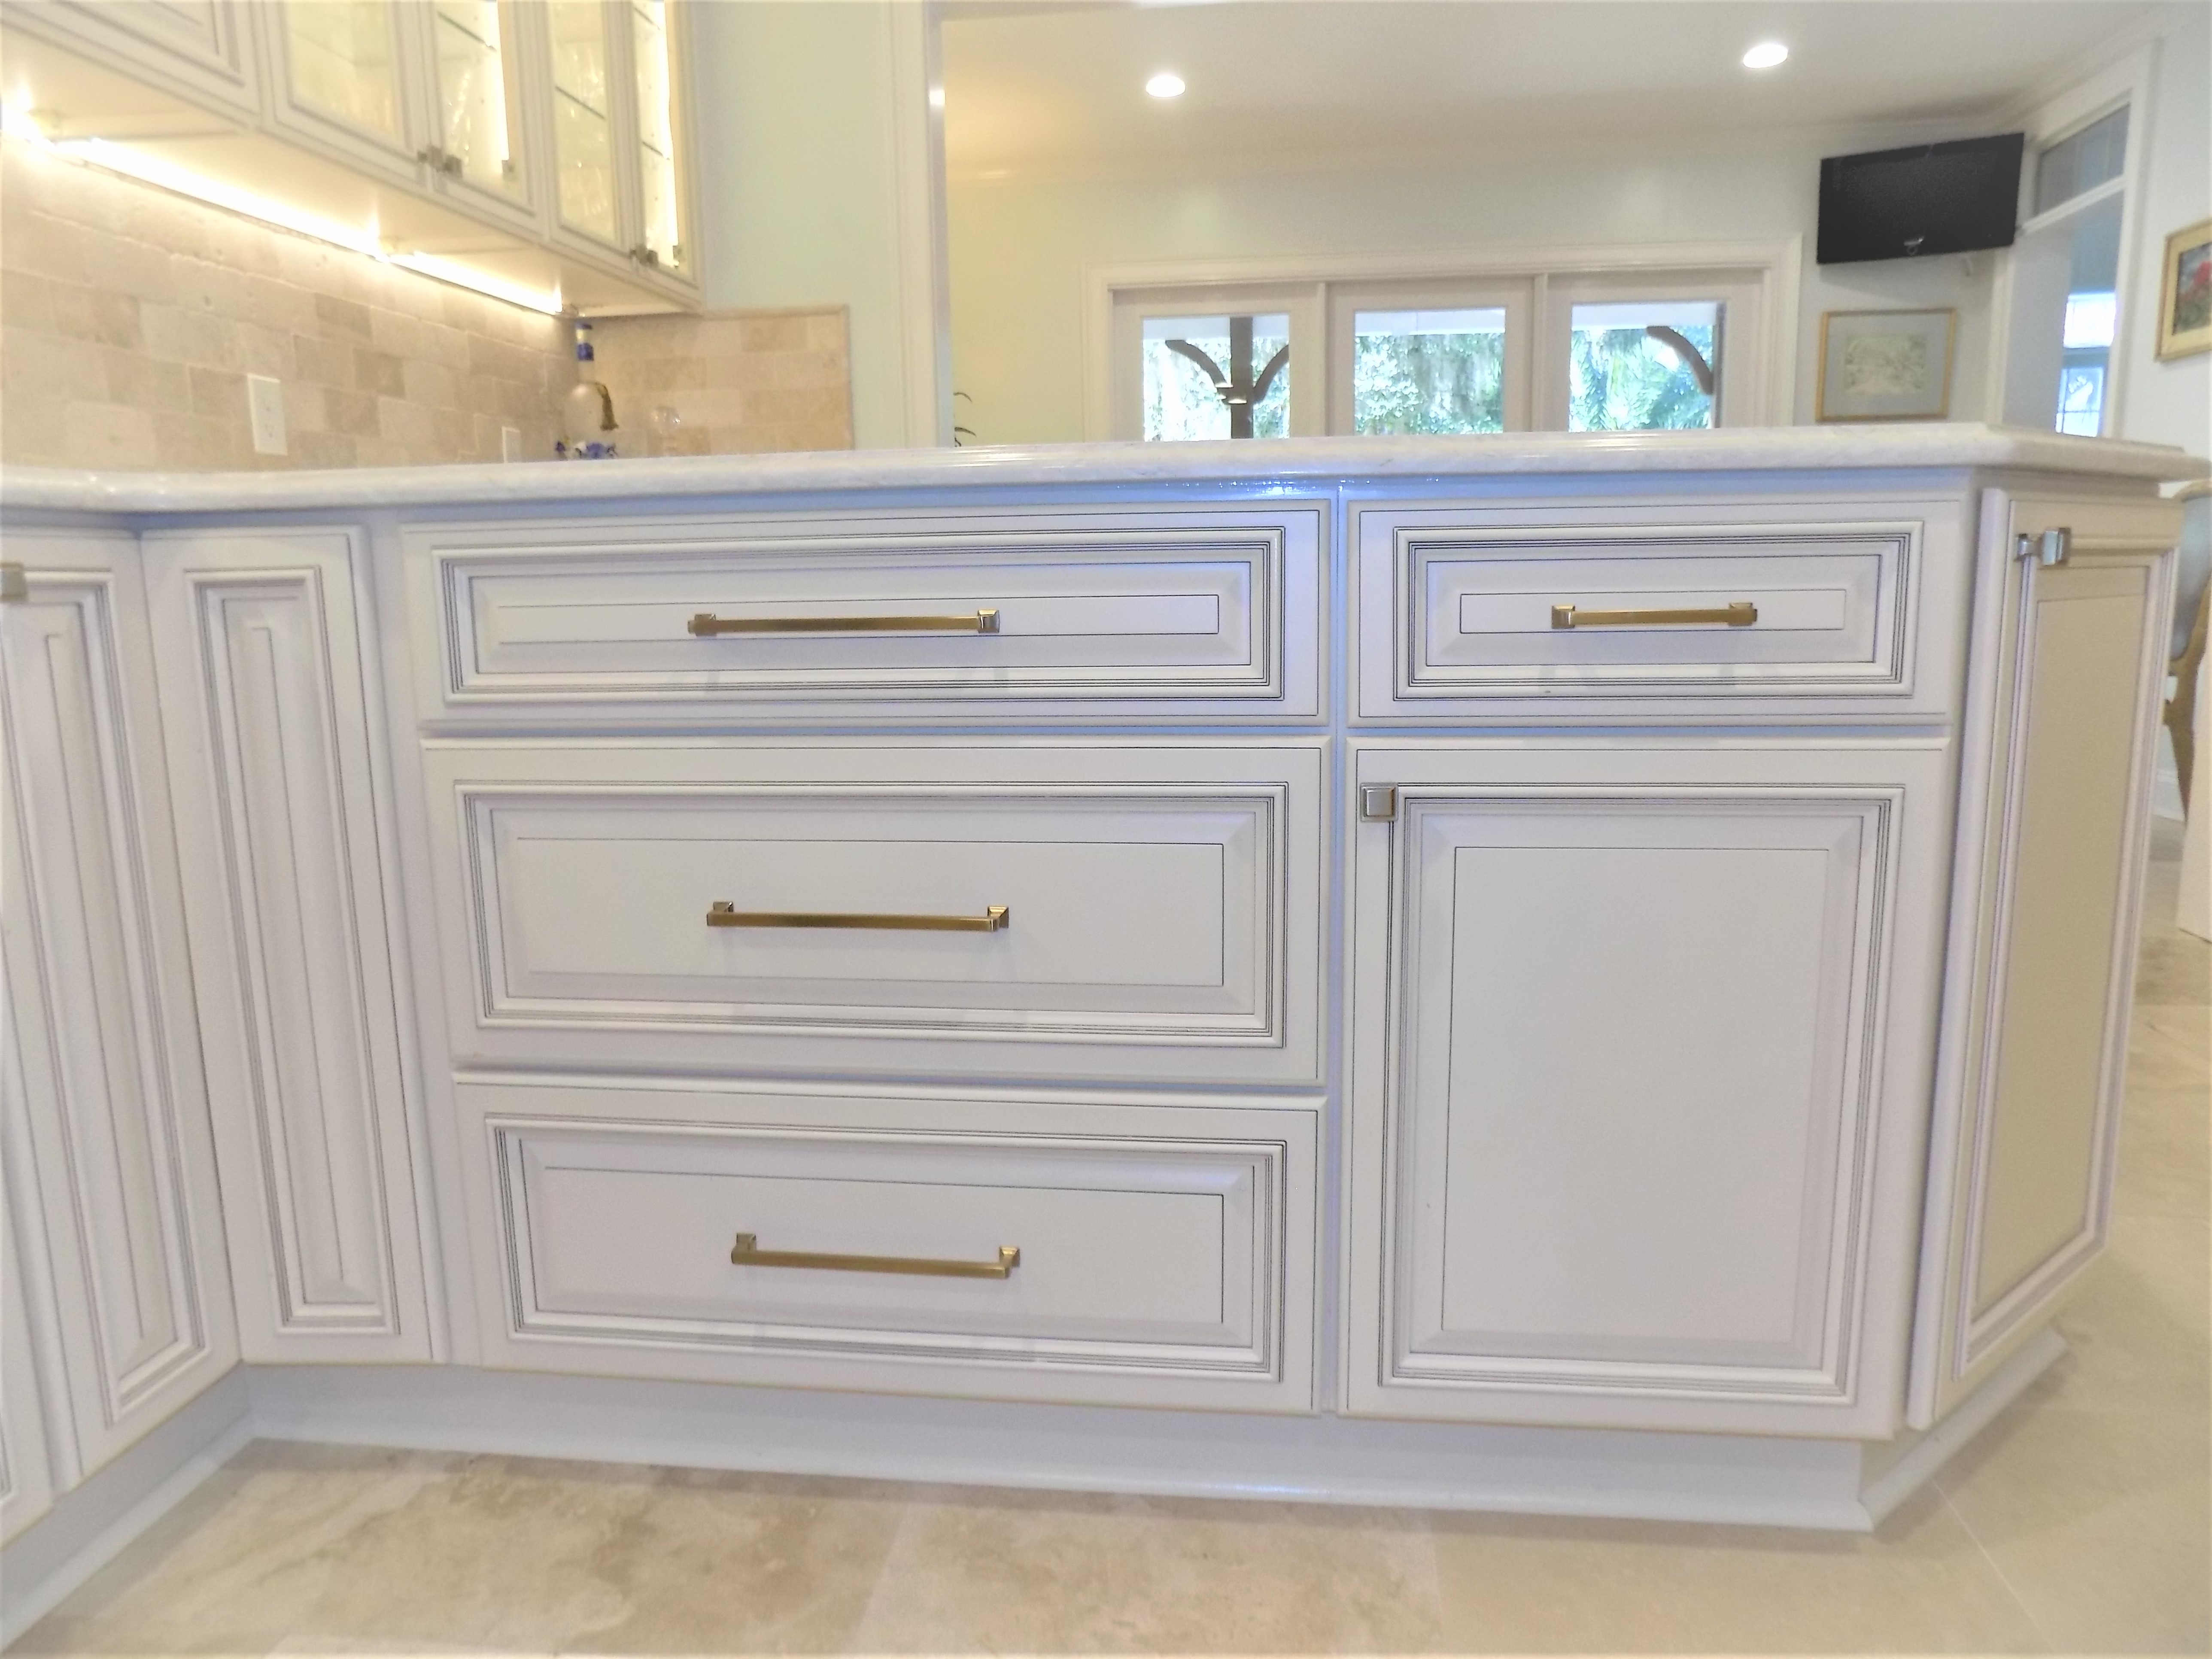 Difference in Standard Overlay and Full Overlay Cabinets